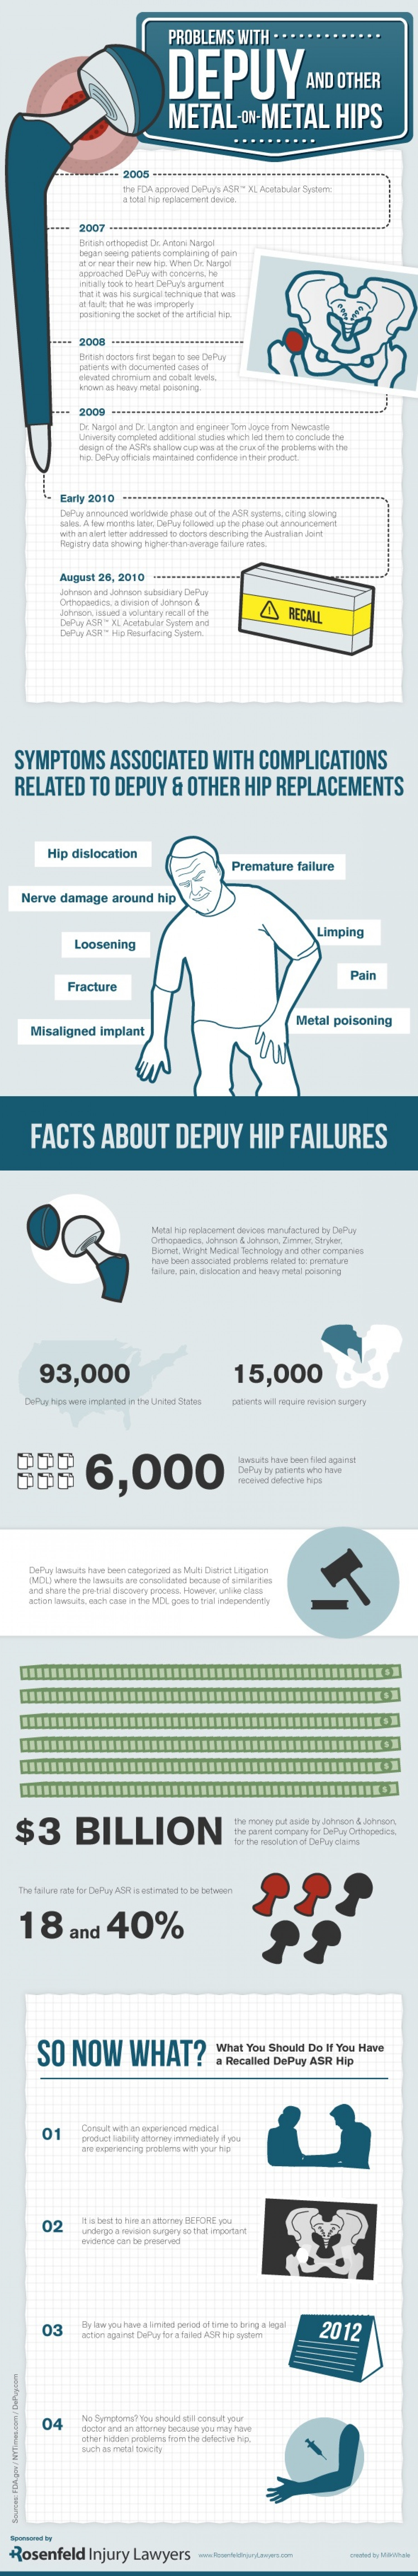 Metal Hip Infographic: Problems With DePuy & Other Metal-On-Metal Hips Infographic